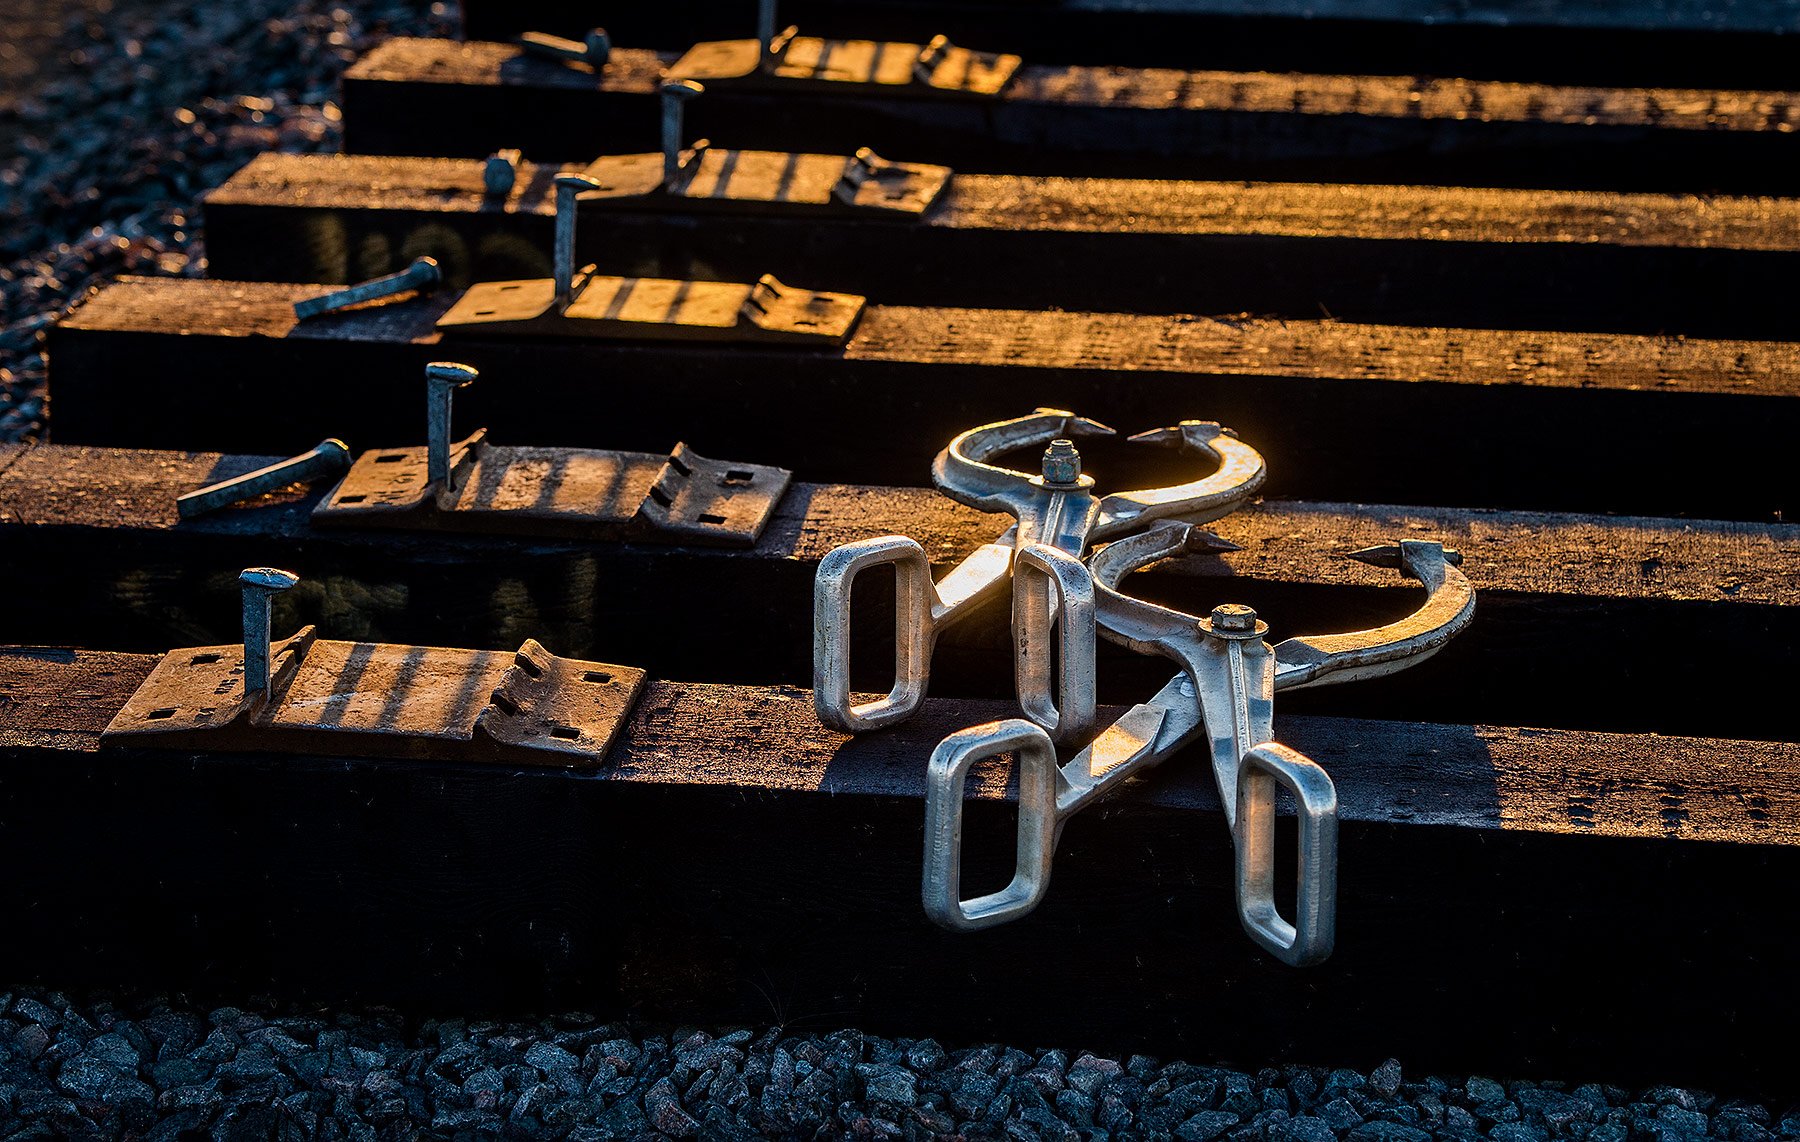 Railroad Work Tools